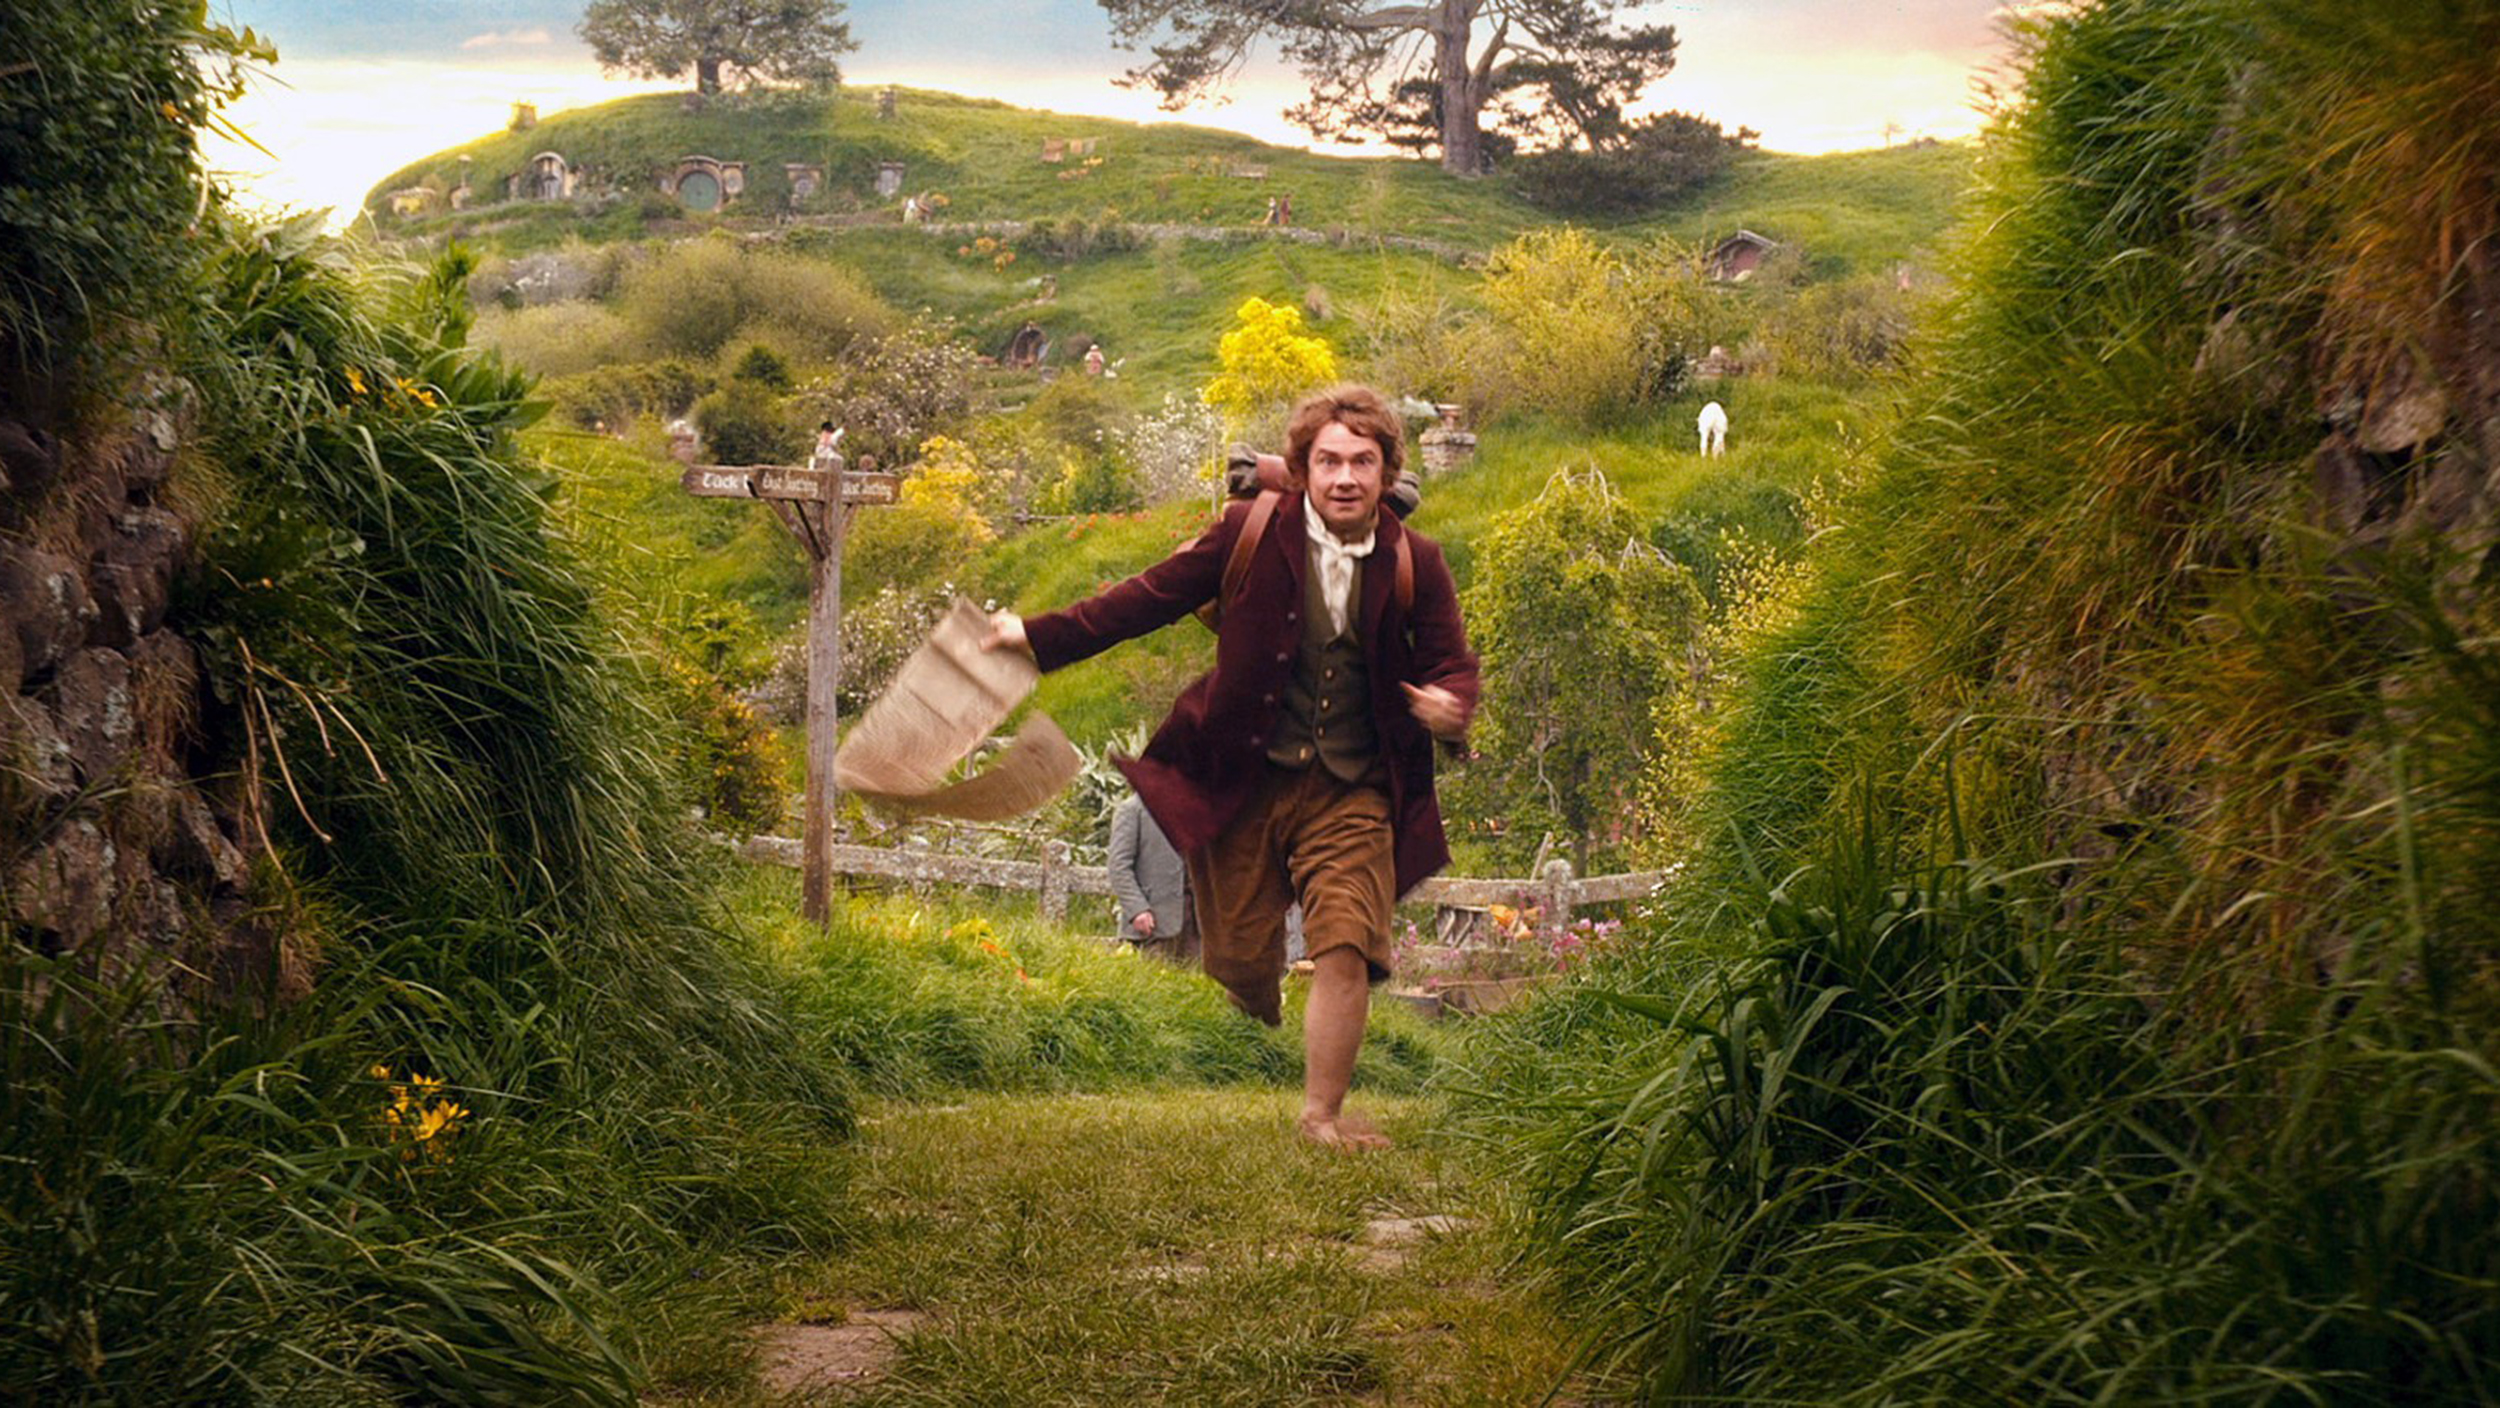 5 places where you can vacation like a hobbit on Hobbit Day ...